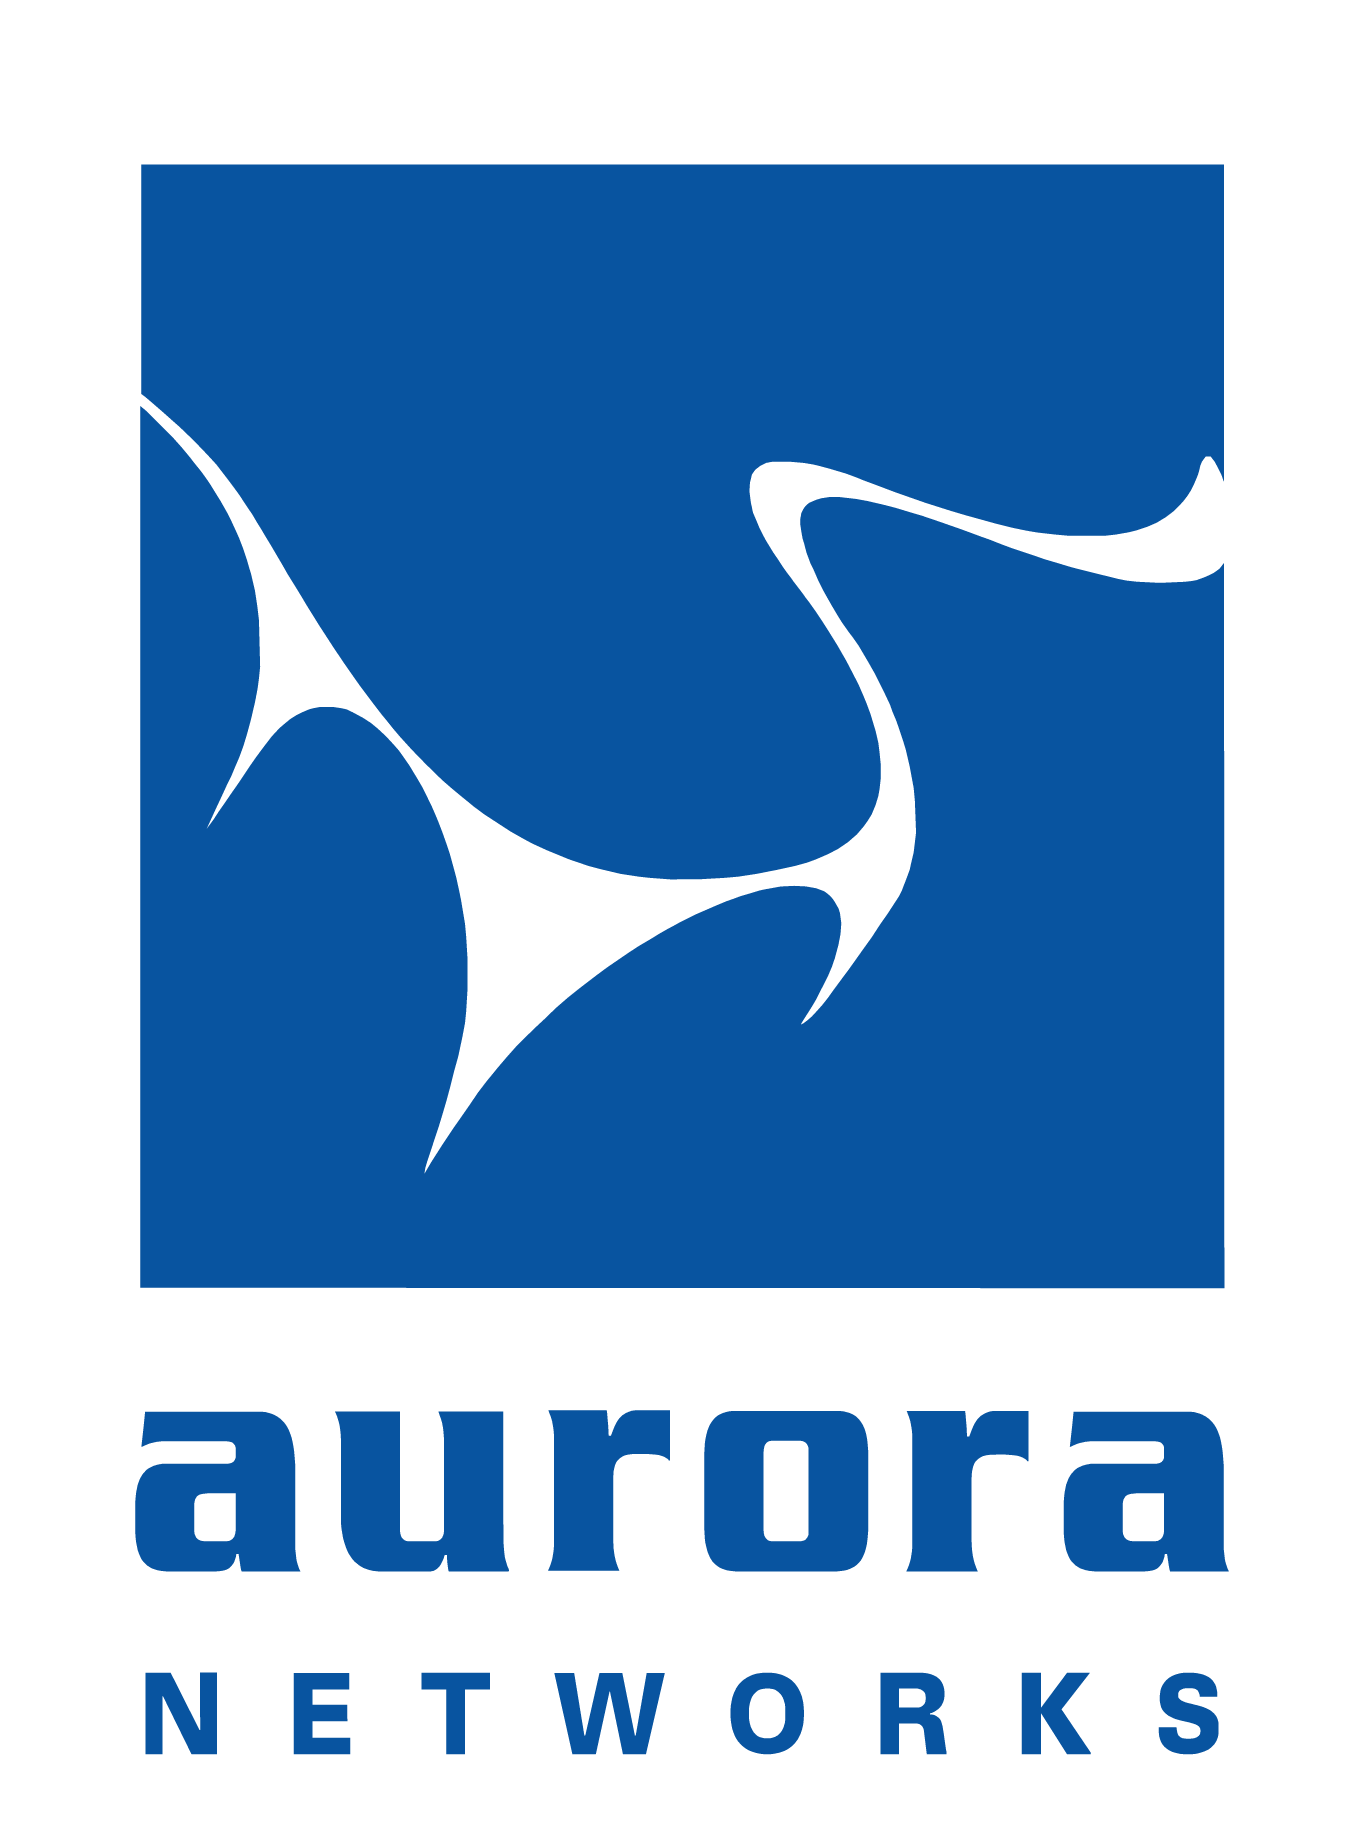 Aurora Networks is now a part of ARRIS